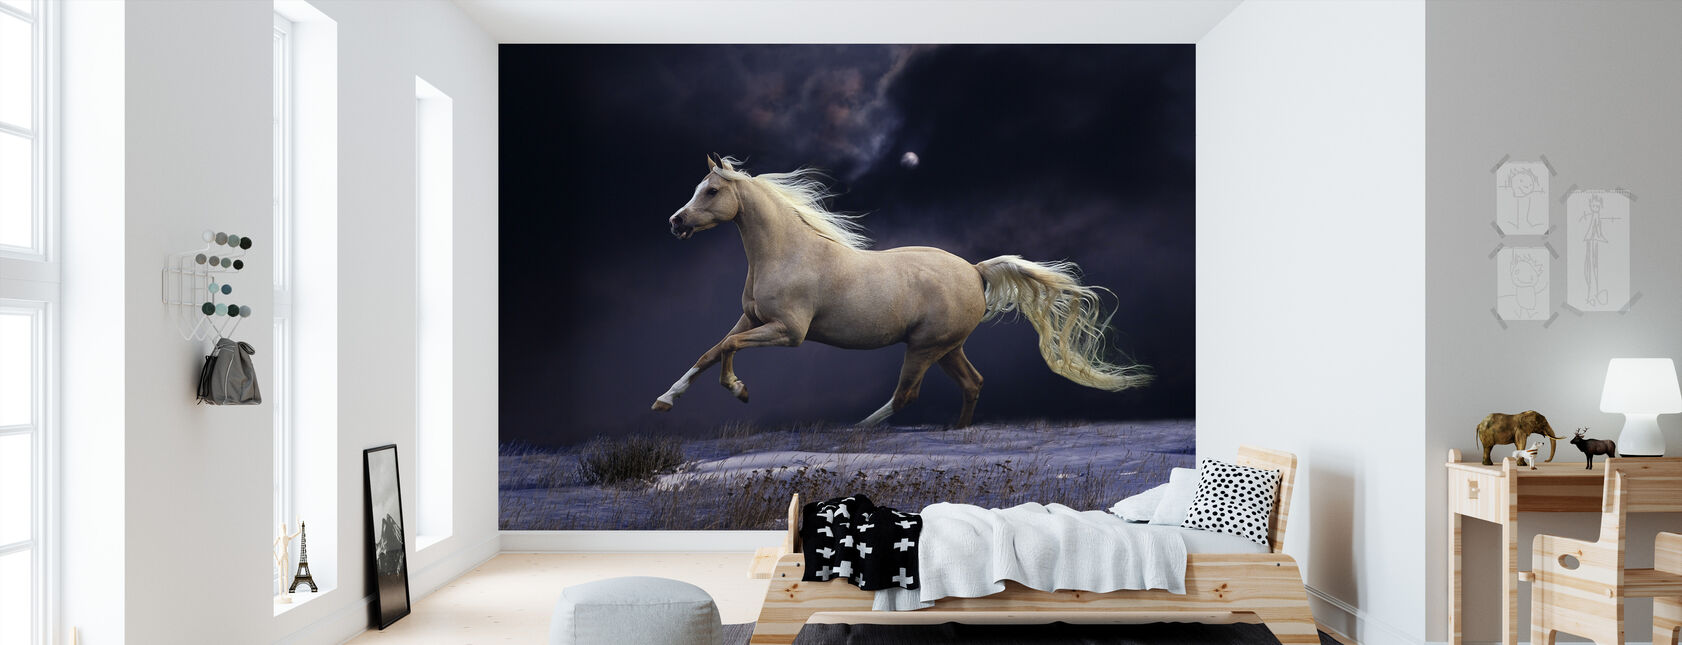 Paard in Moonlight - Behang - Kinderkamer